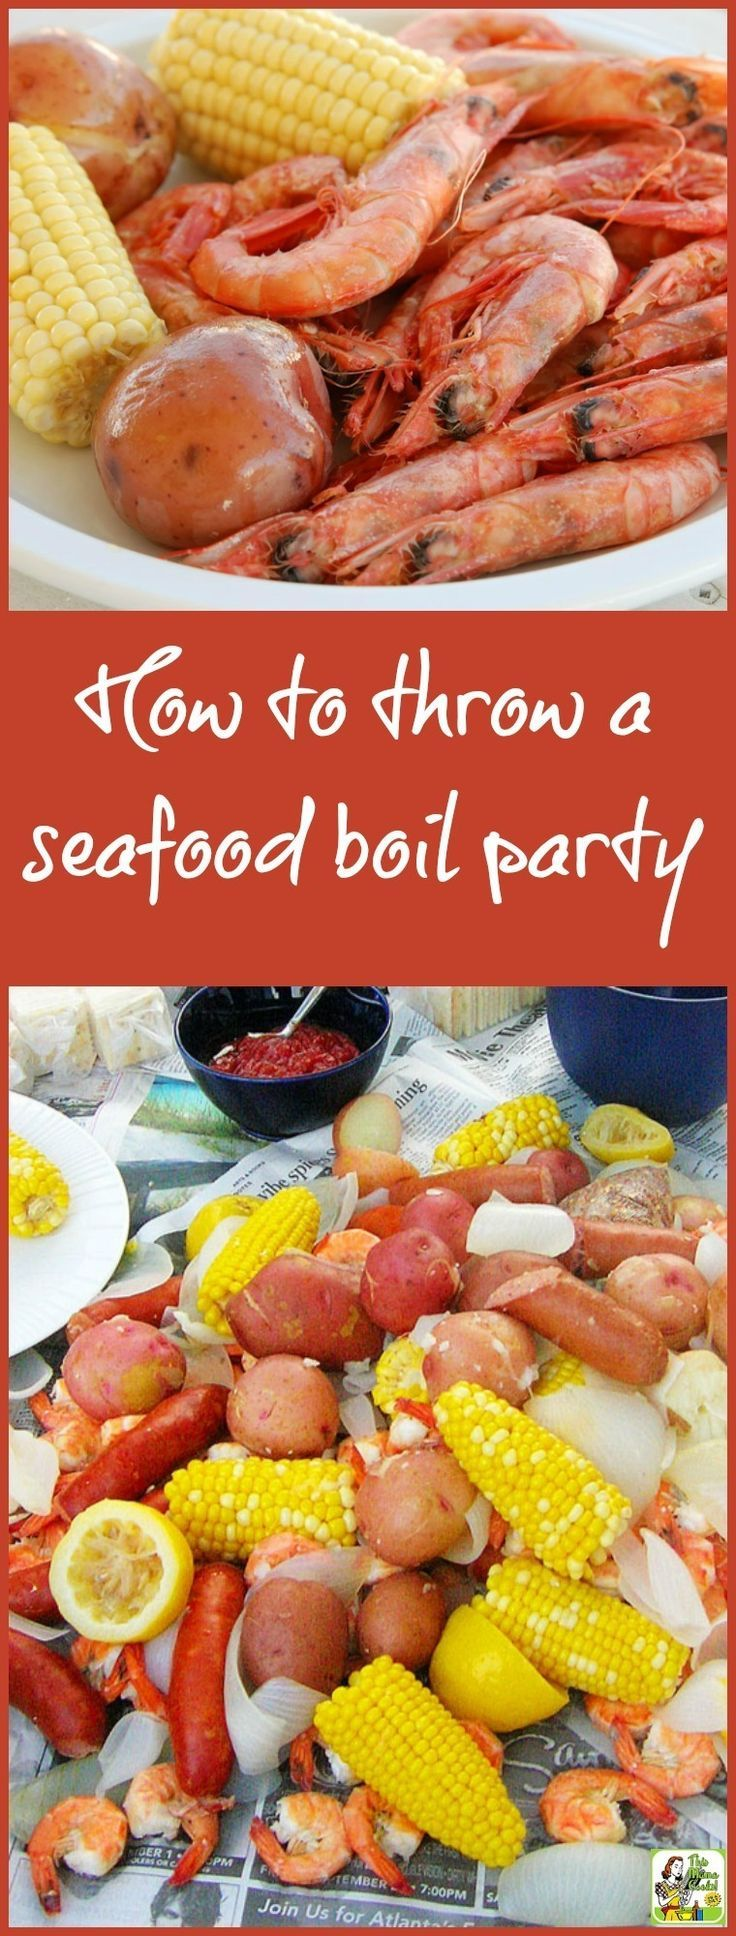 Want to throw a crawfish boil this summer? Here are some tips on how to throw a seafood boil party, whether you love lobster, shrimp, crab or want to do a traditional Louisiana low country crawfish boil. Includes tips on equipment you'll need as well as a